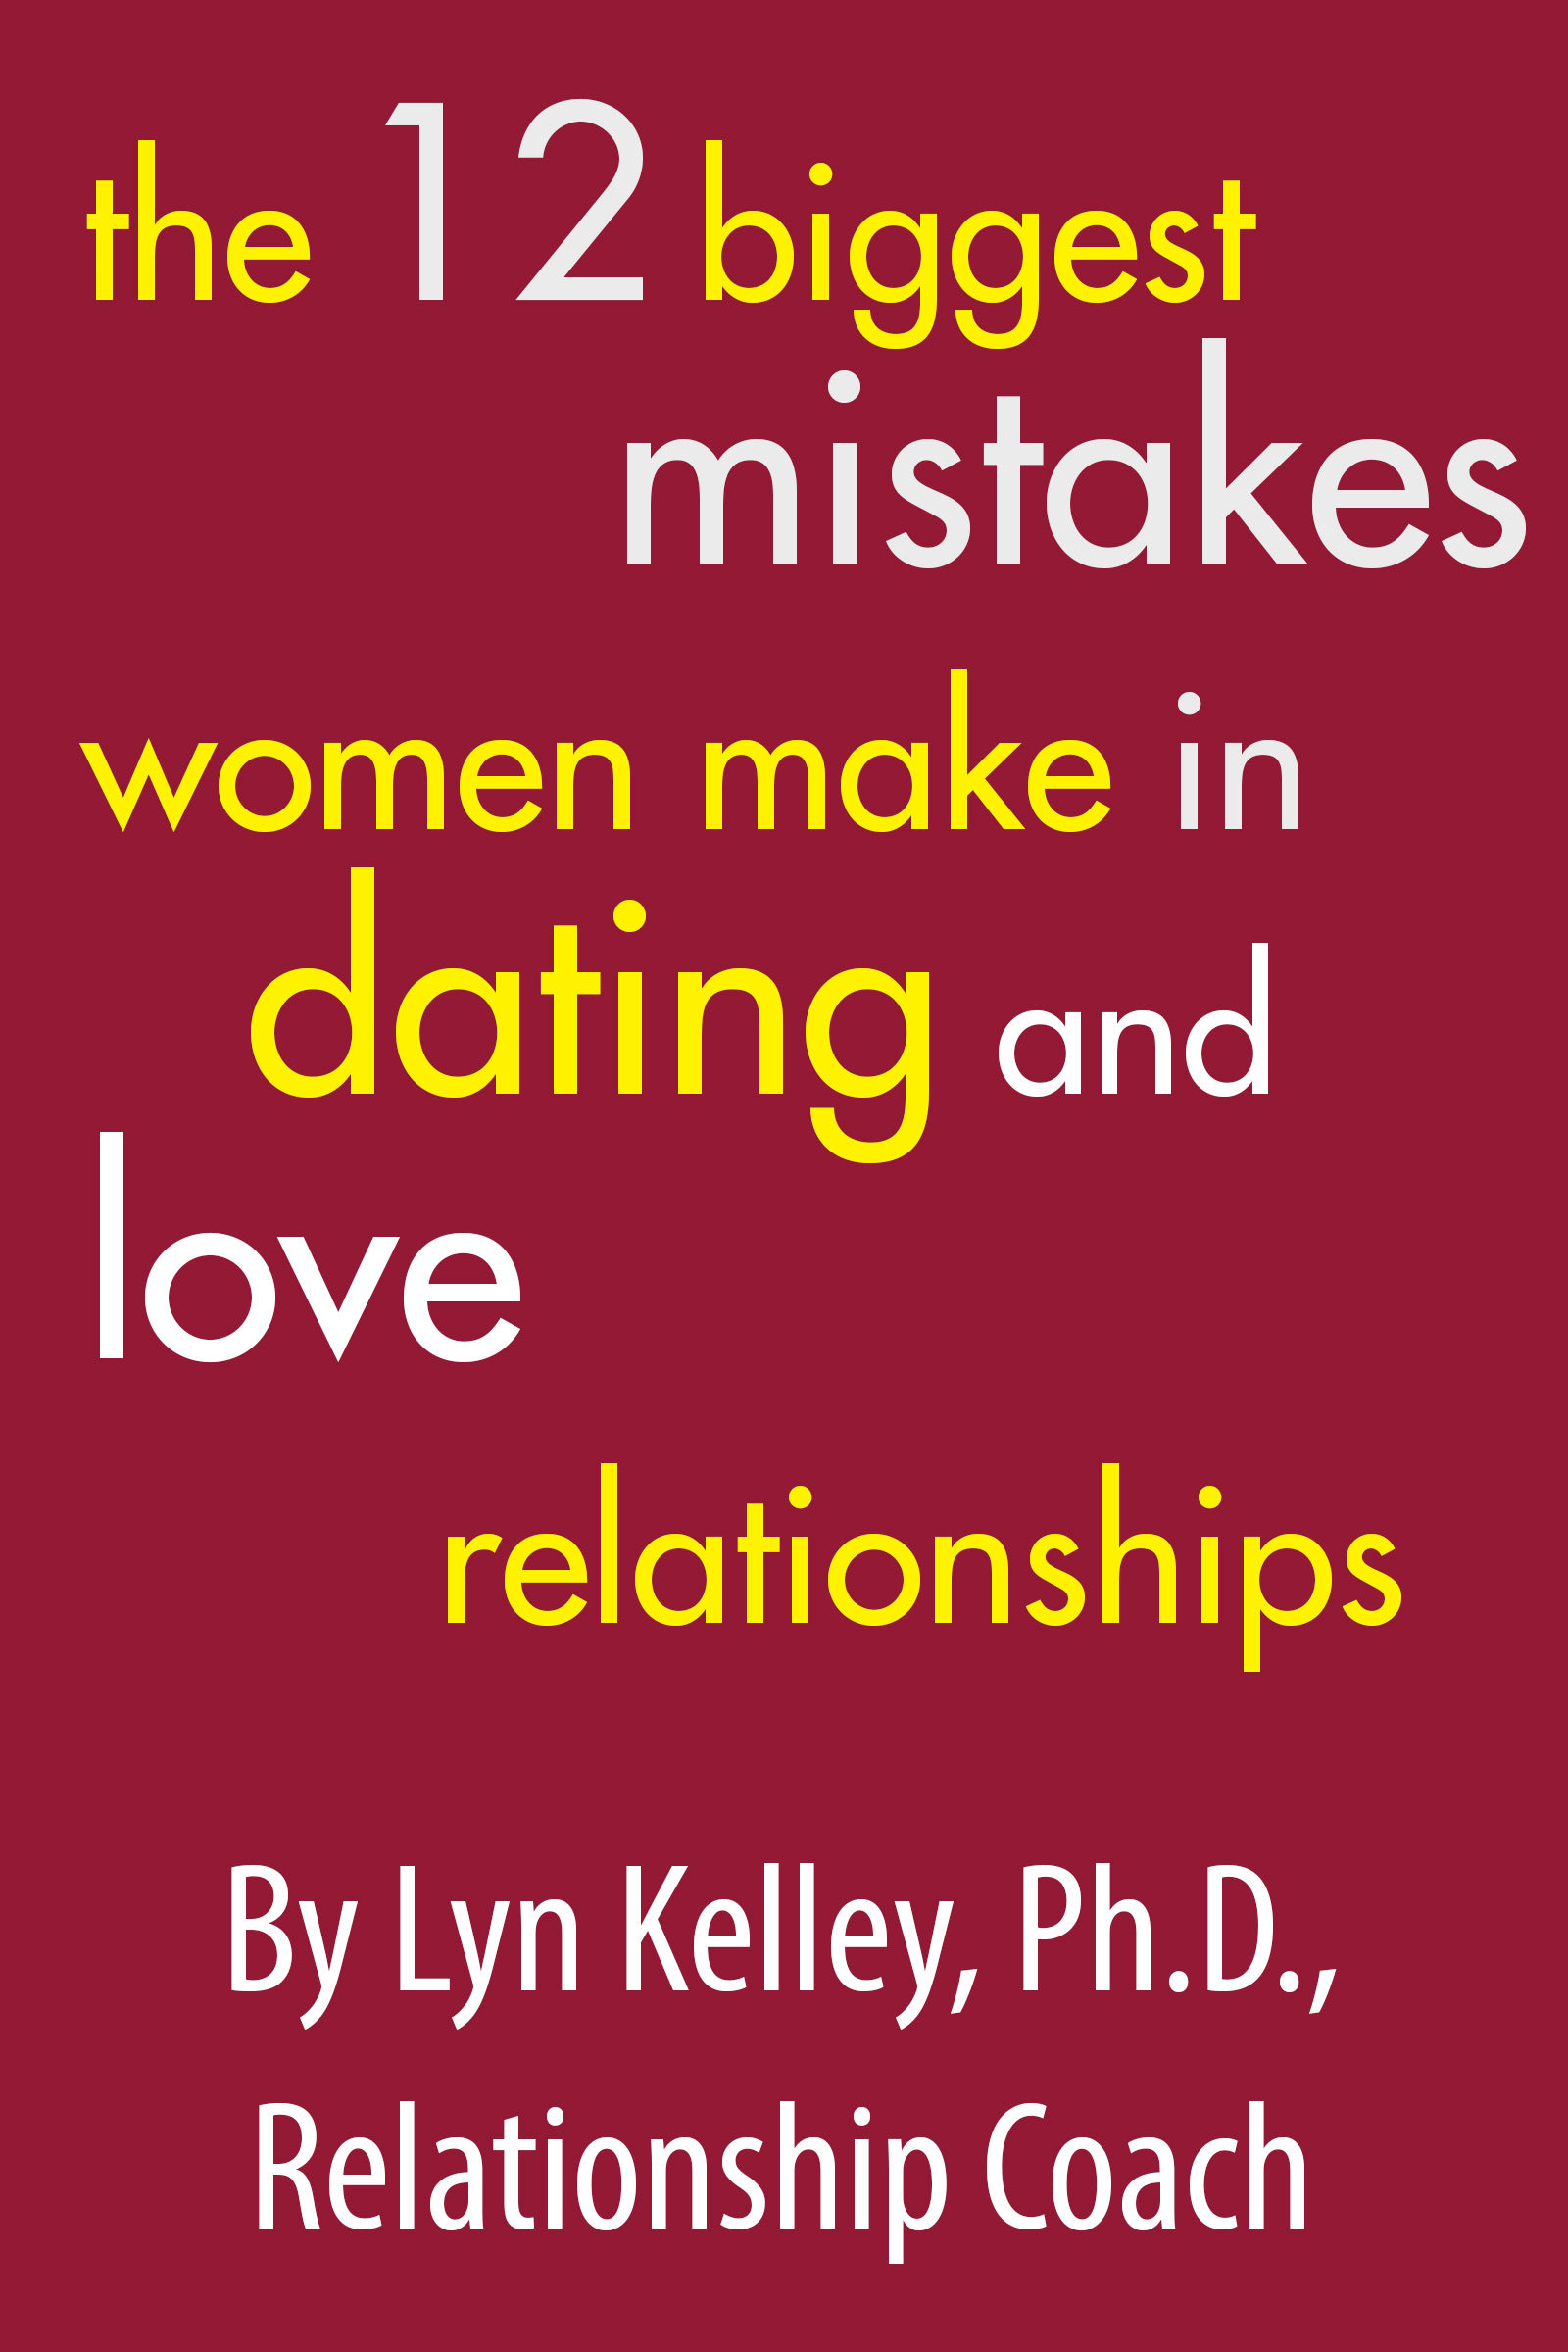 The 12 Biggest Mistakes Women Make in Dating and Love Relationships